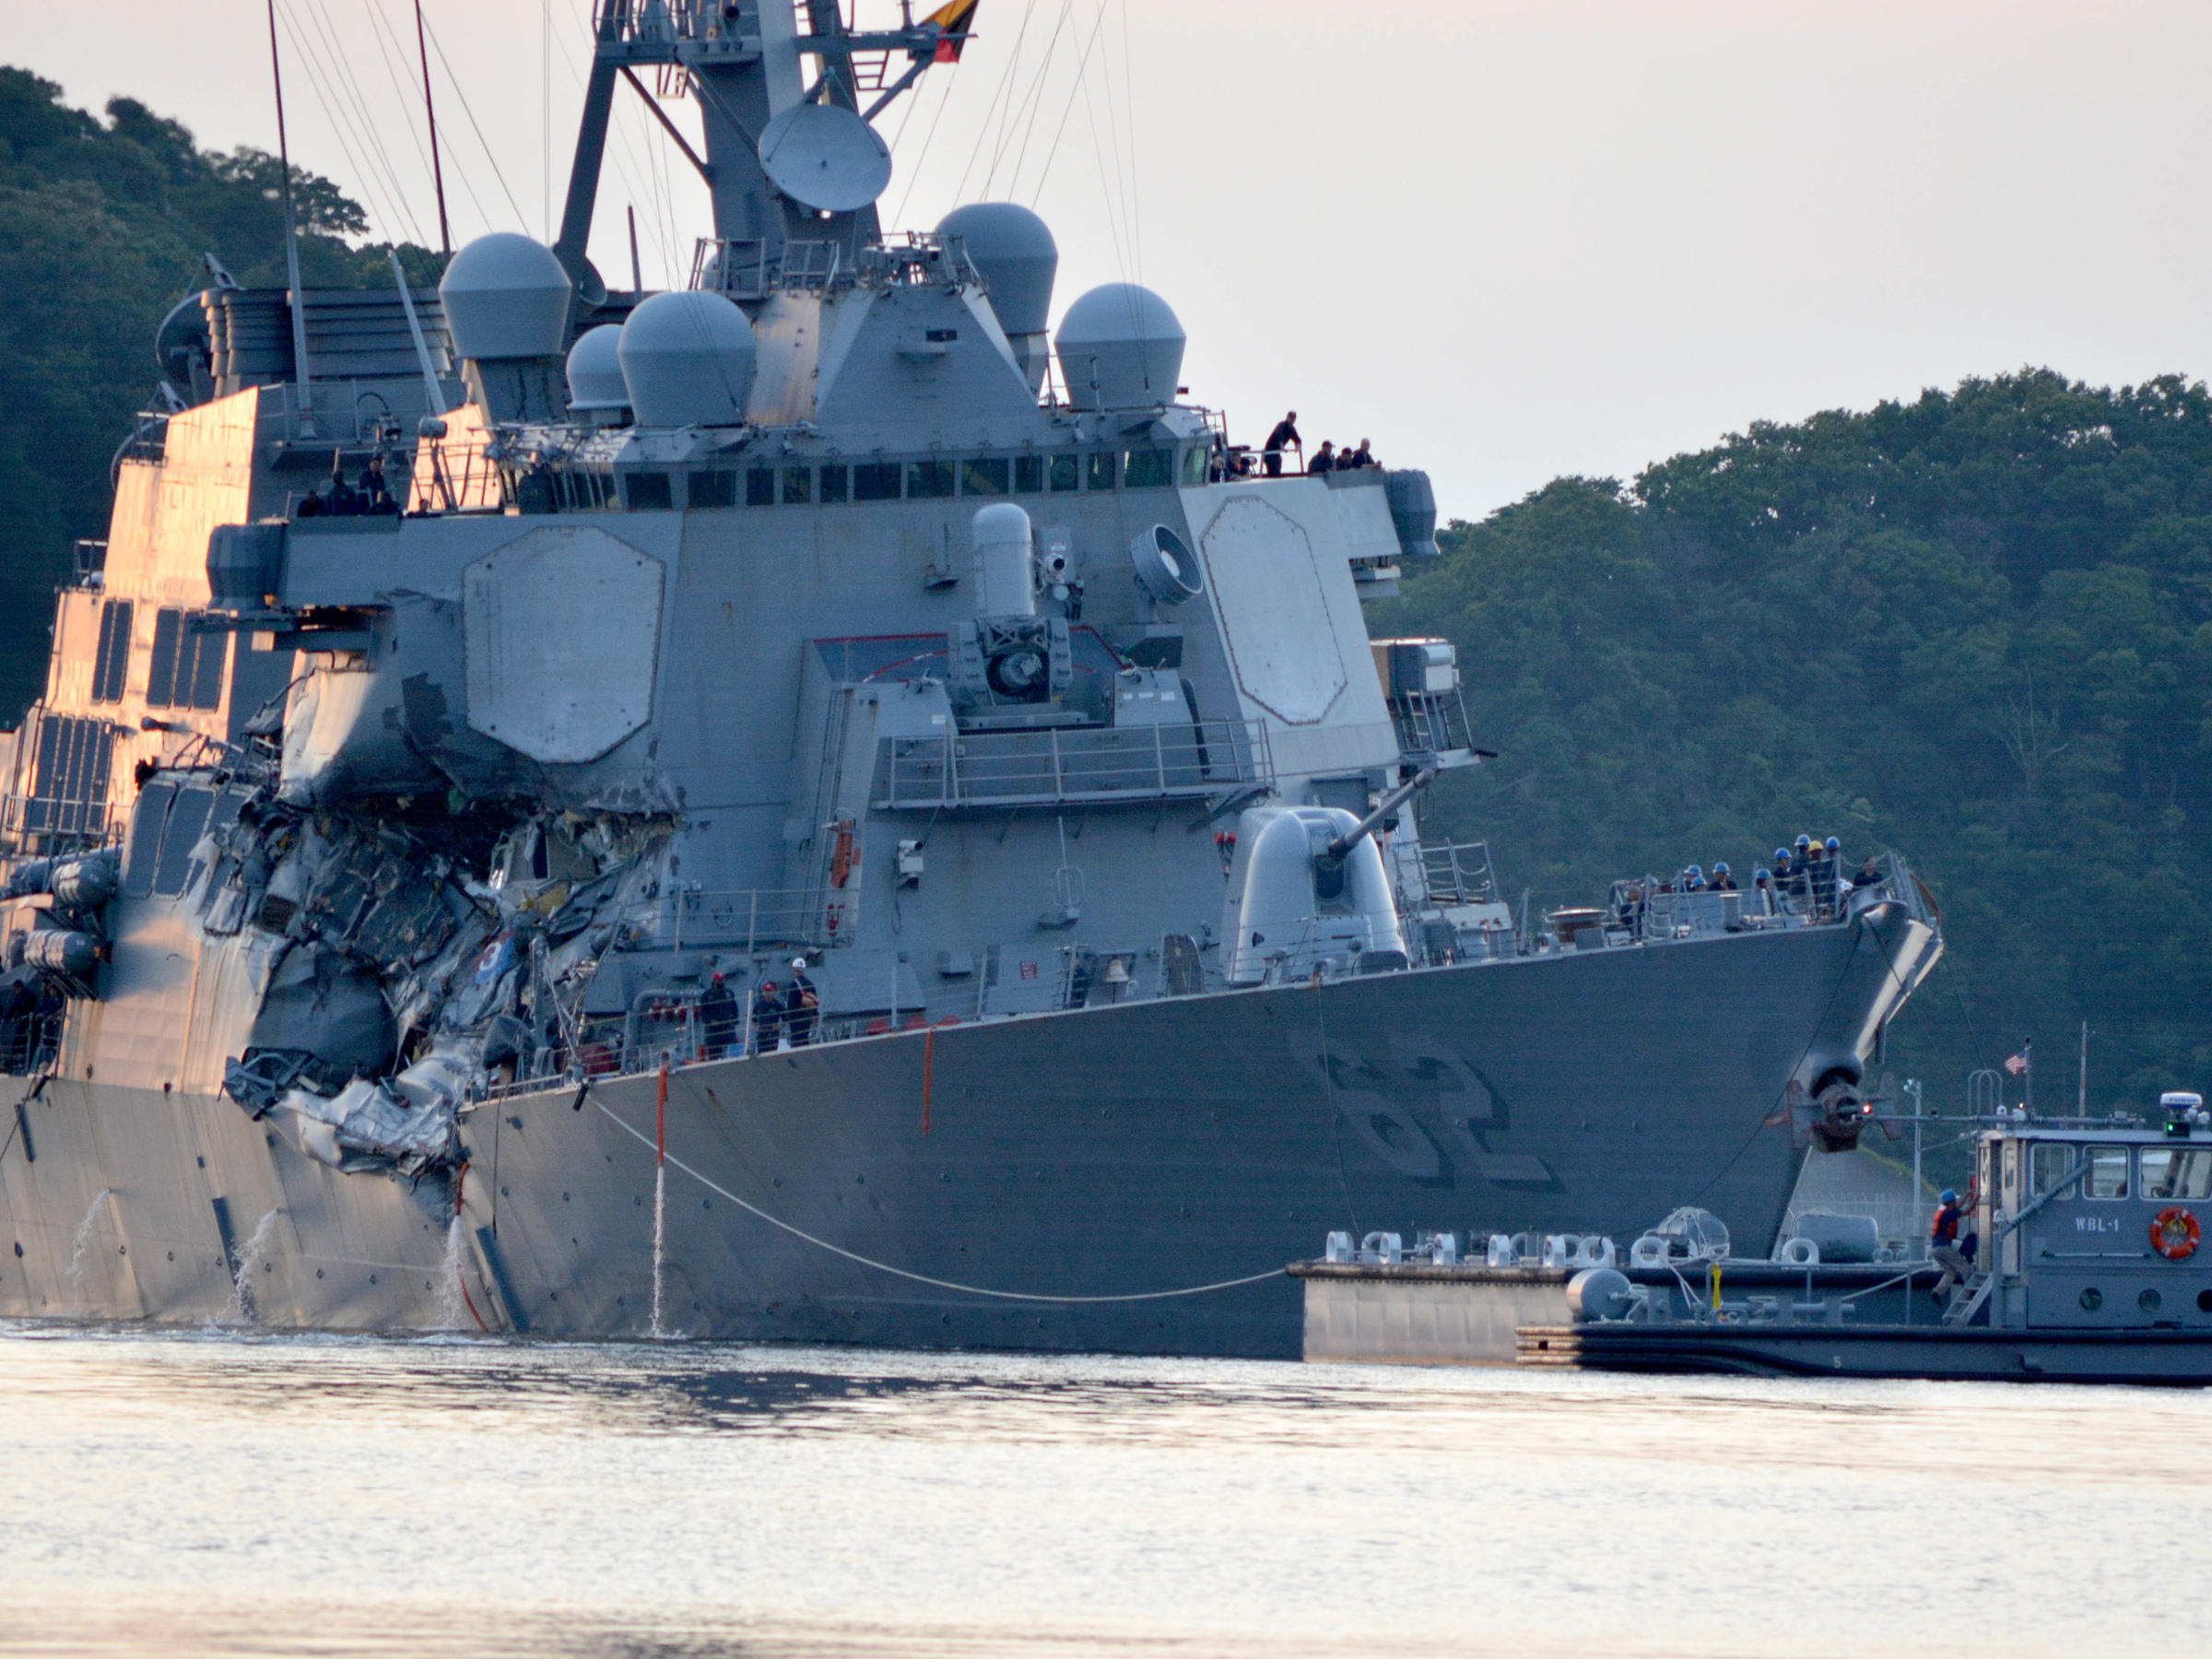 Bodies of missing sailors found on stricken Navy destroyer